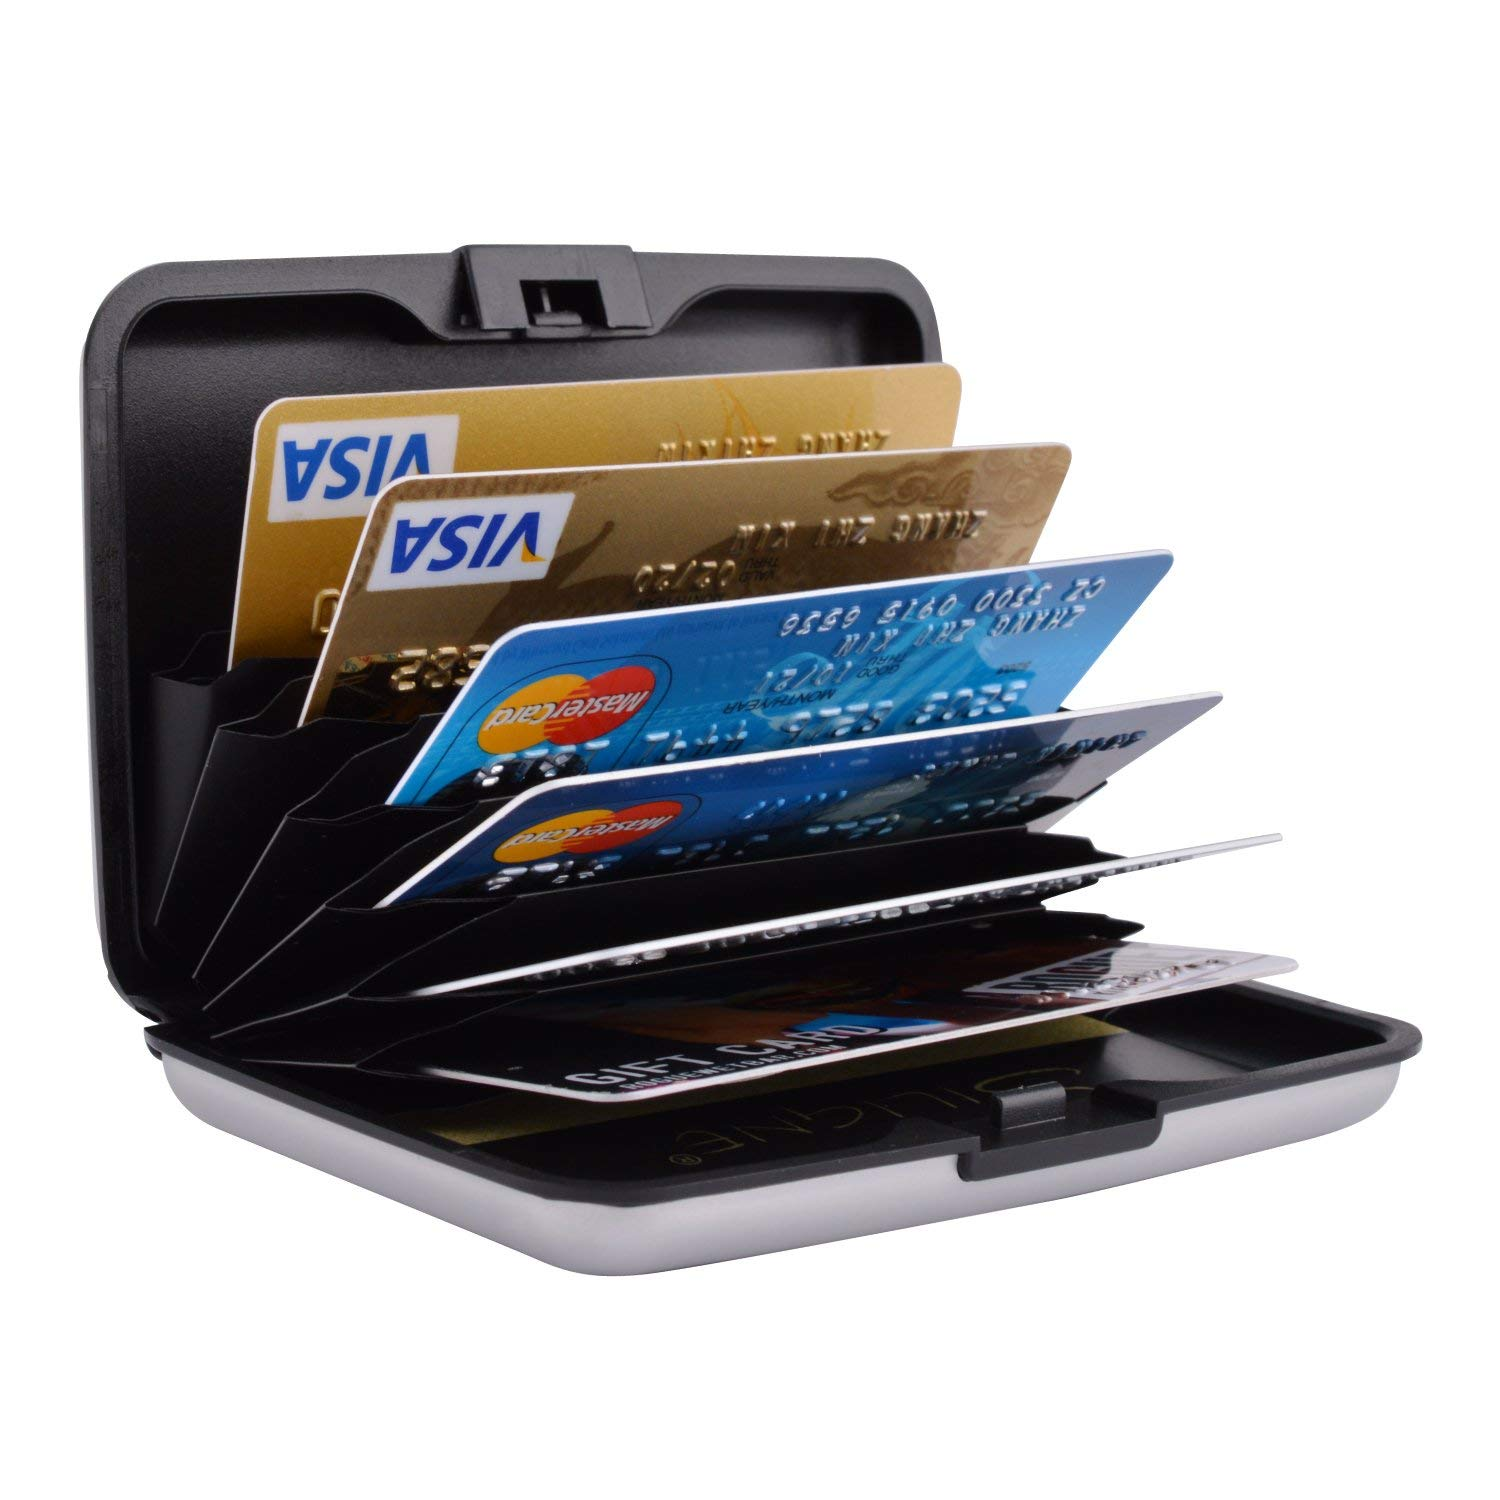 Cheap Shell Credit Card Payment Find Shell Credit Card Payment